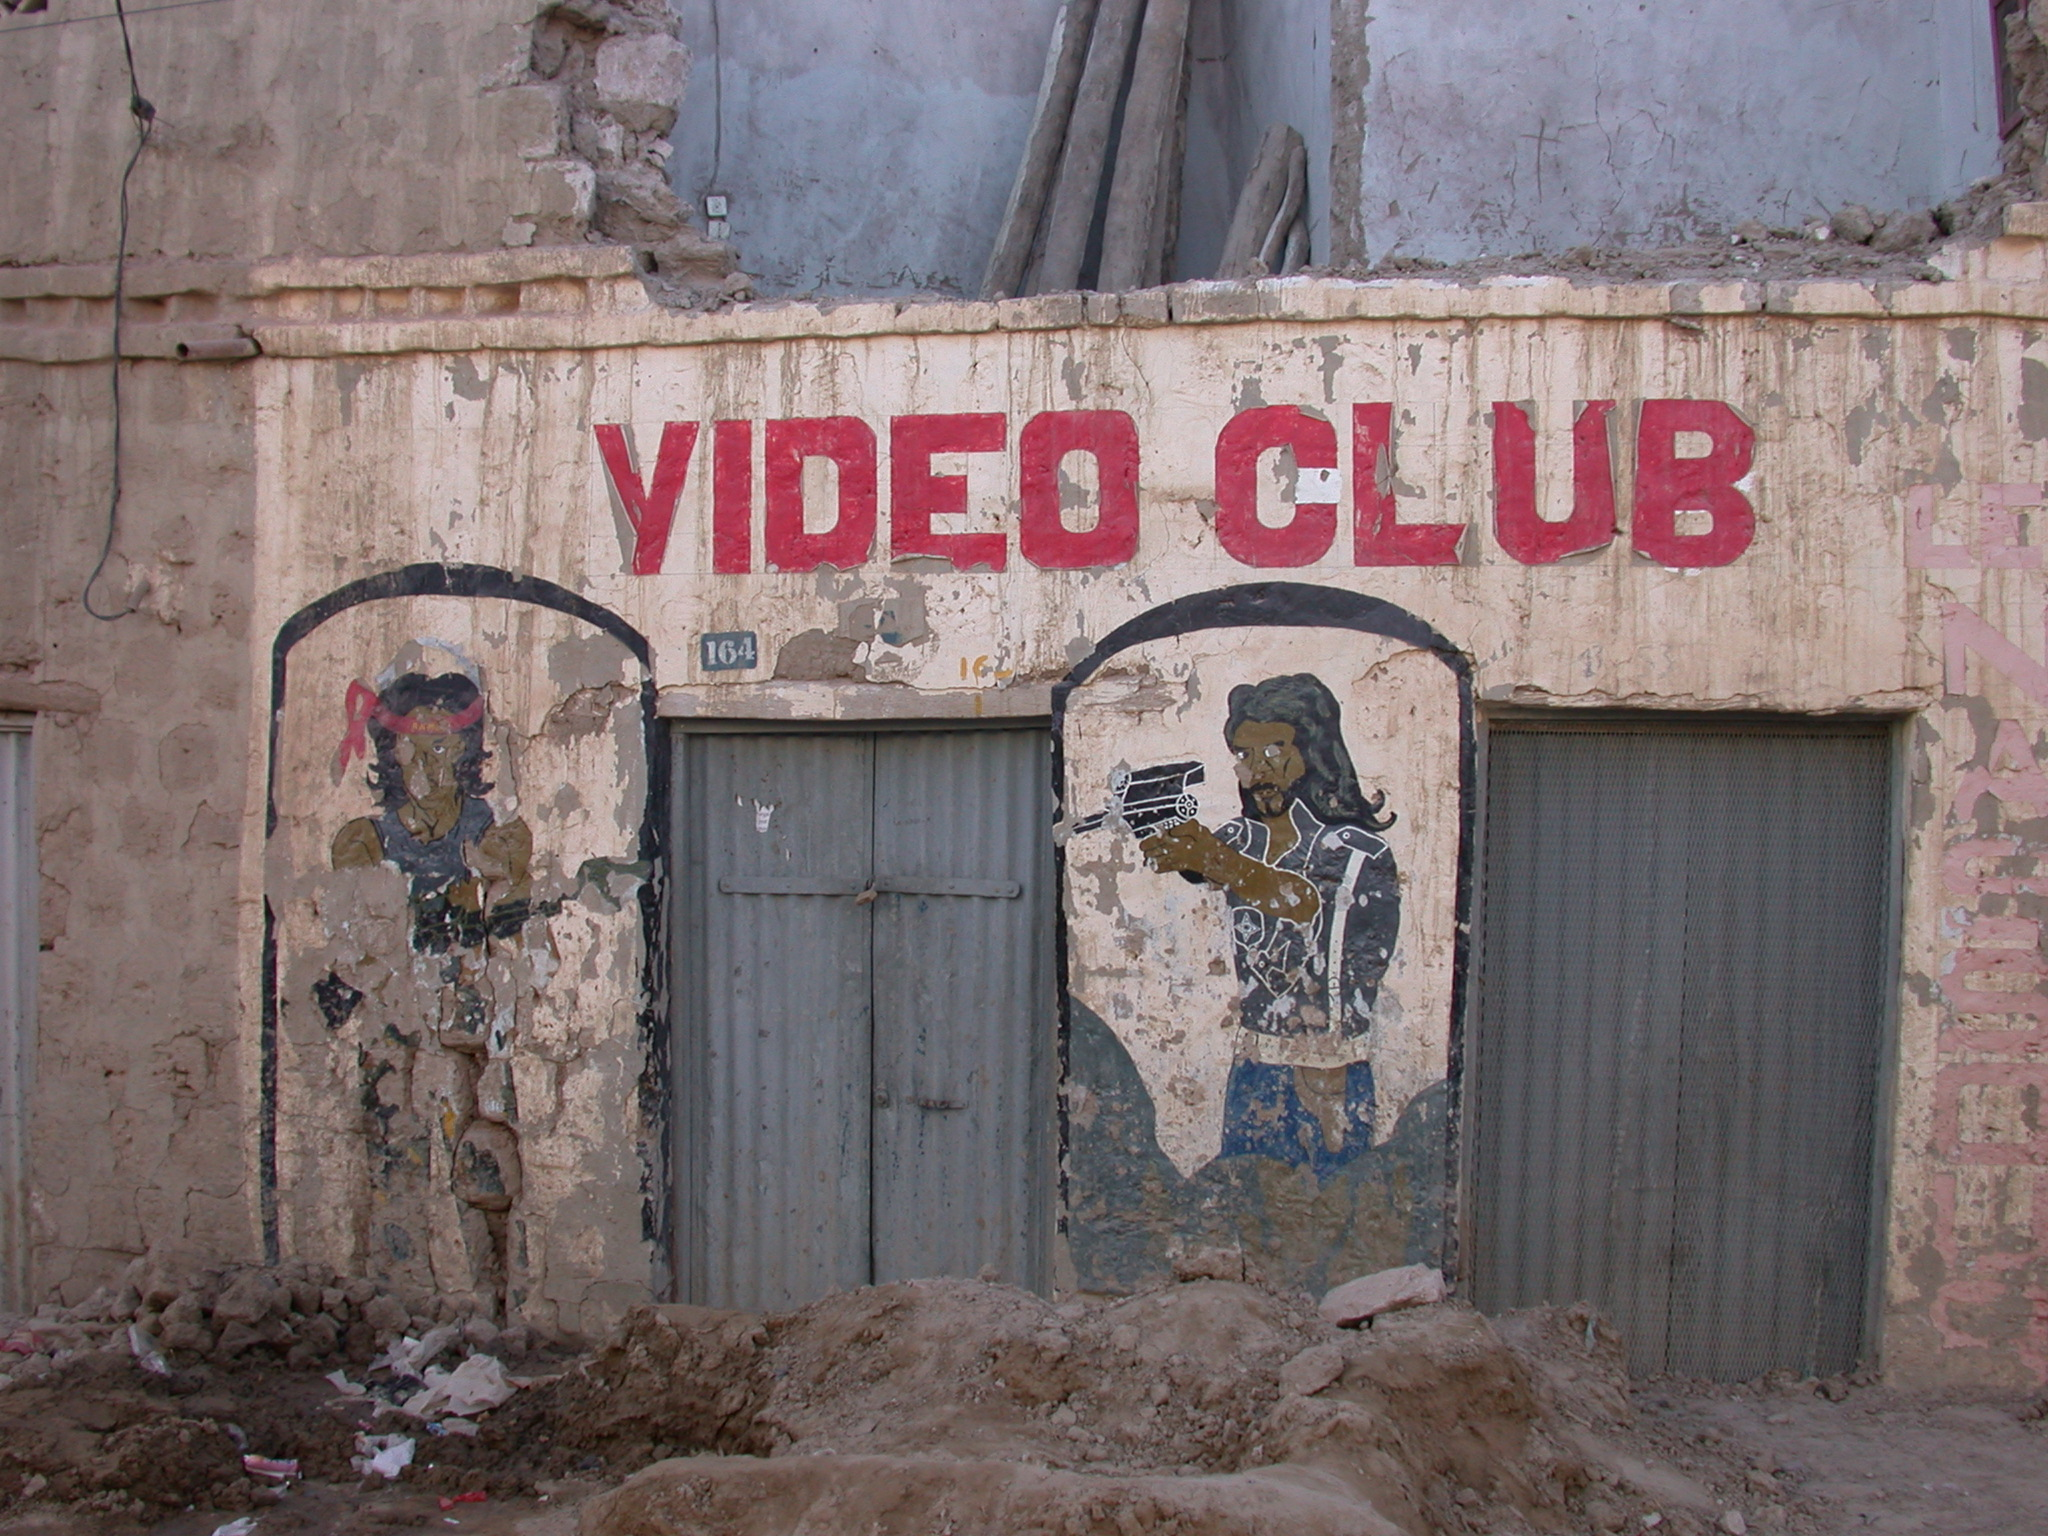 Video Club Ruins, Timbuktu, Mali